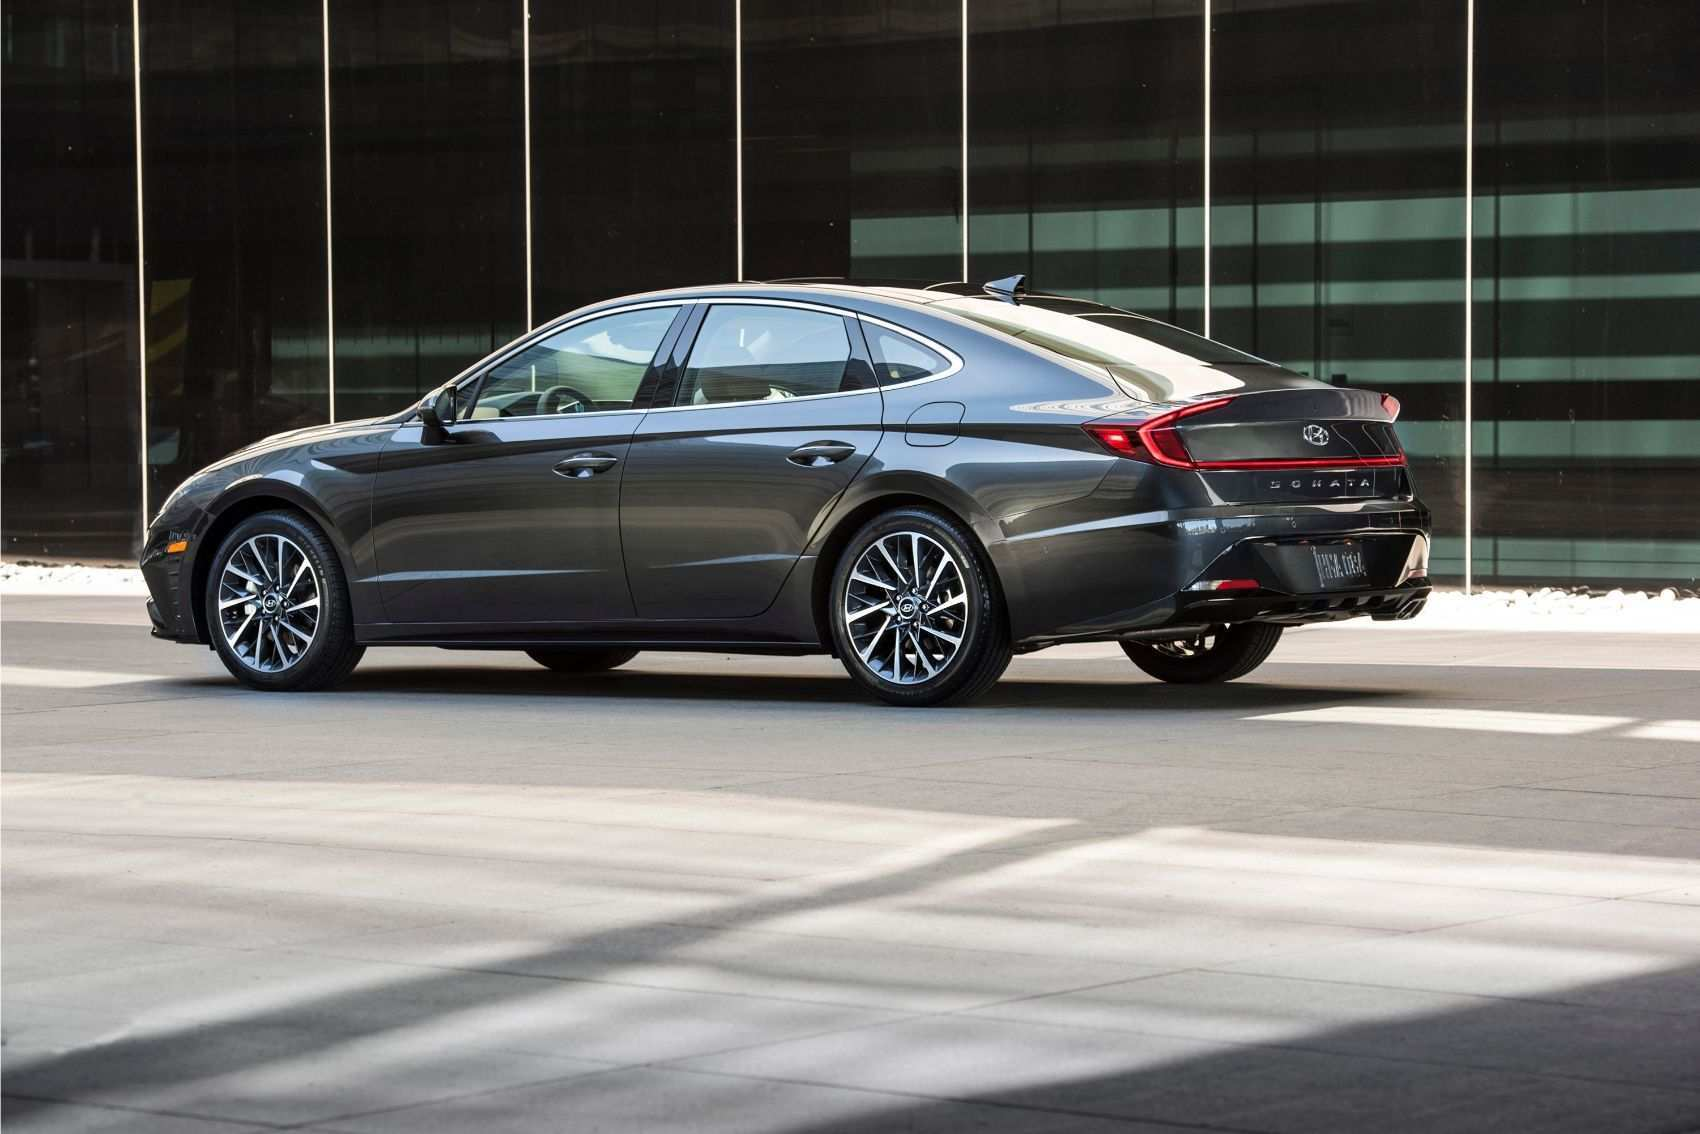 66 Gallery of Pictures Of The 2020 Hyundai Sonata History by Pictures Of The 2020 Hyundai Sonata